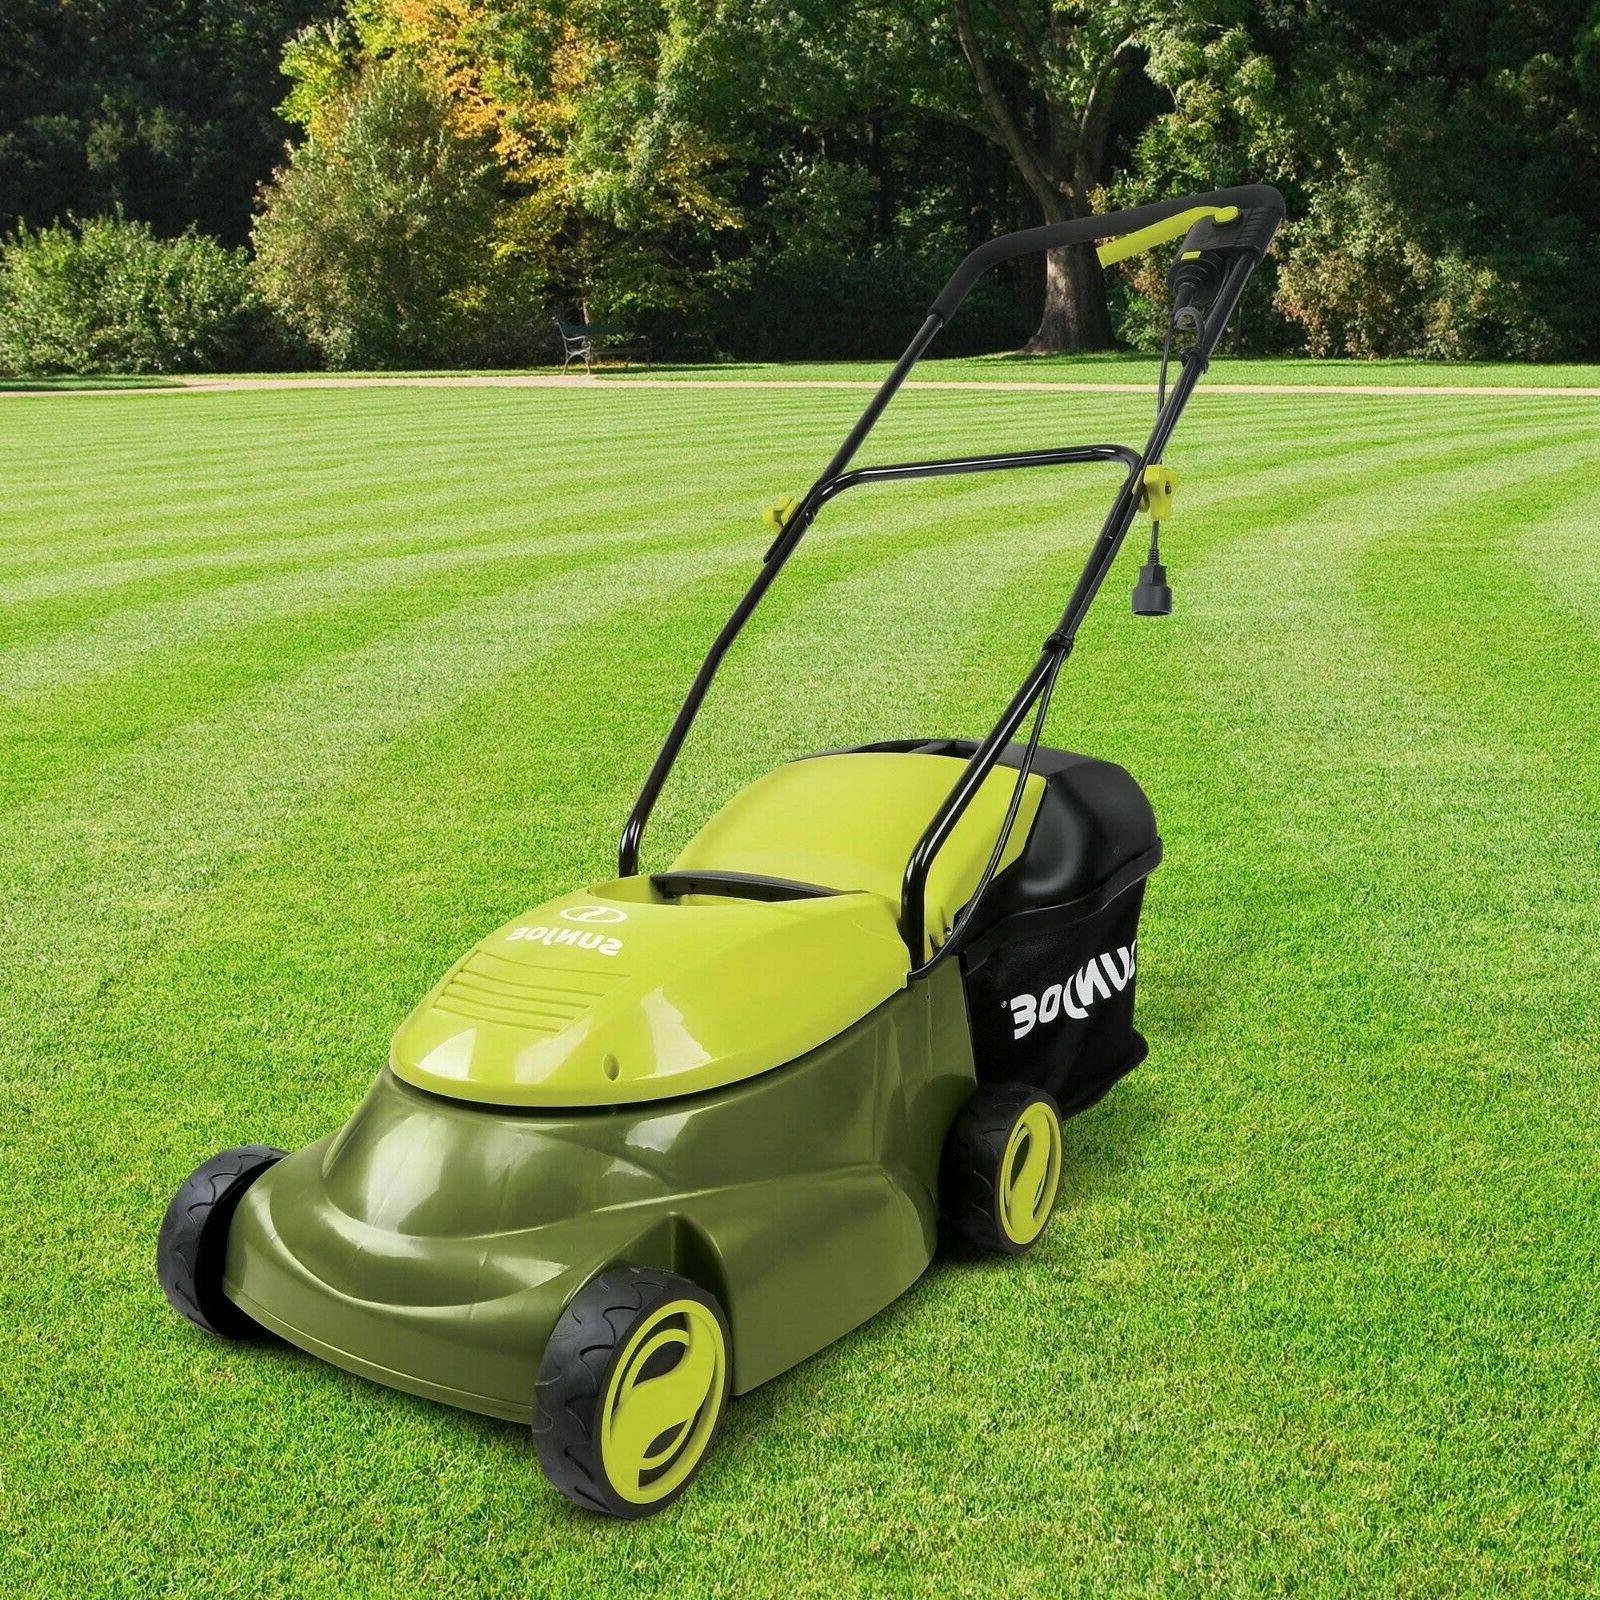 Sun 14 Inch 12 Corded Push Mower Outdoor